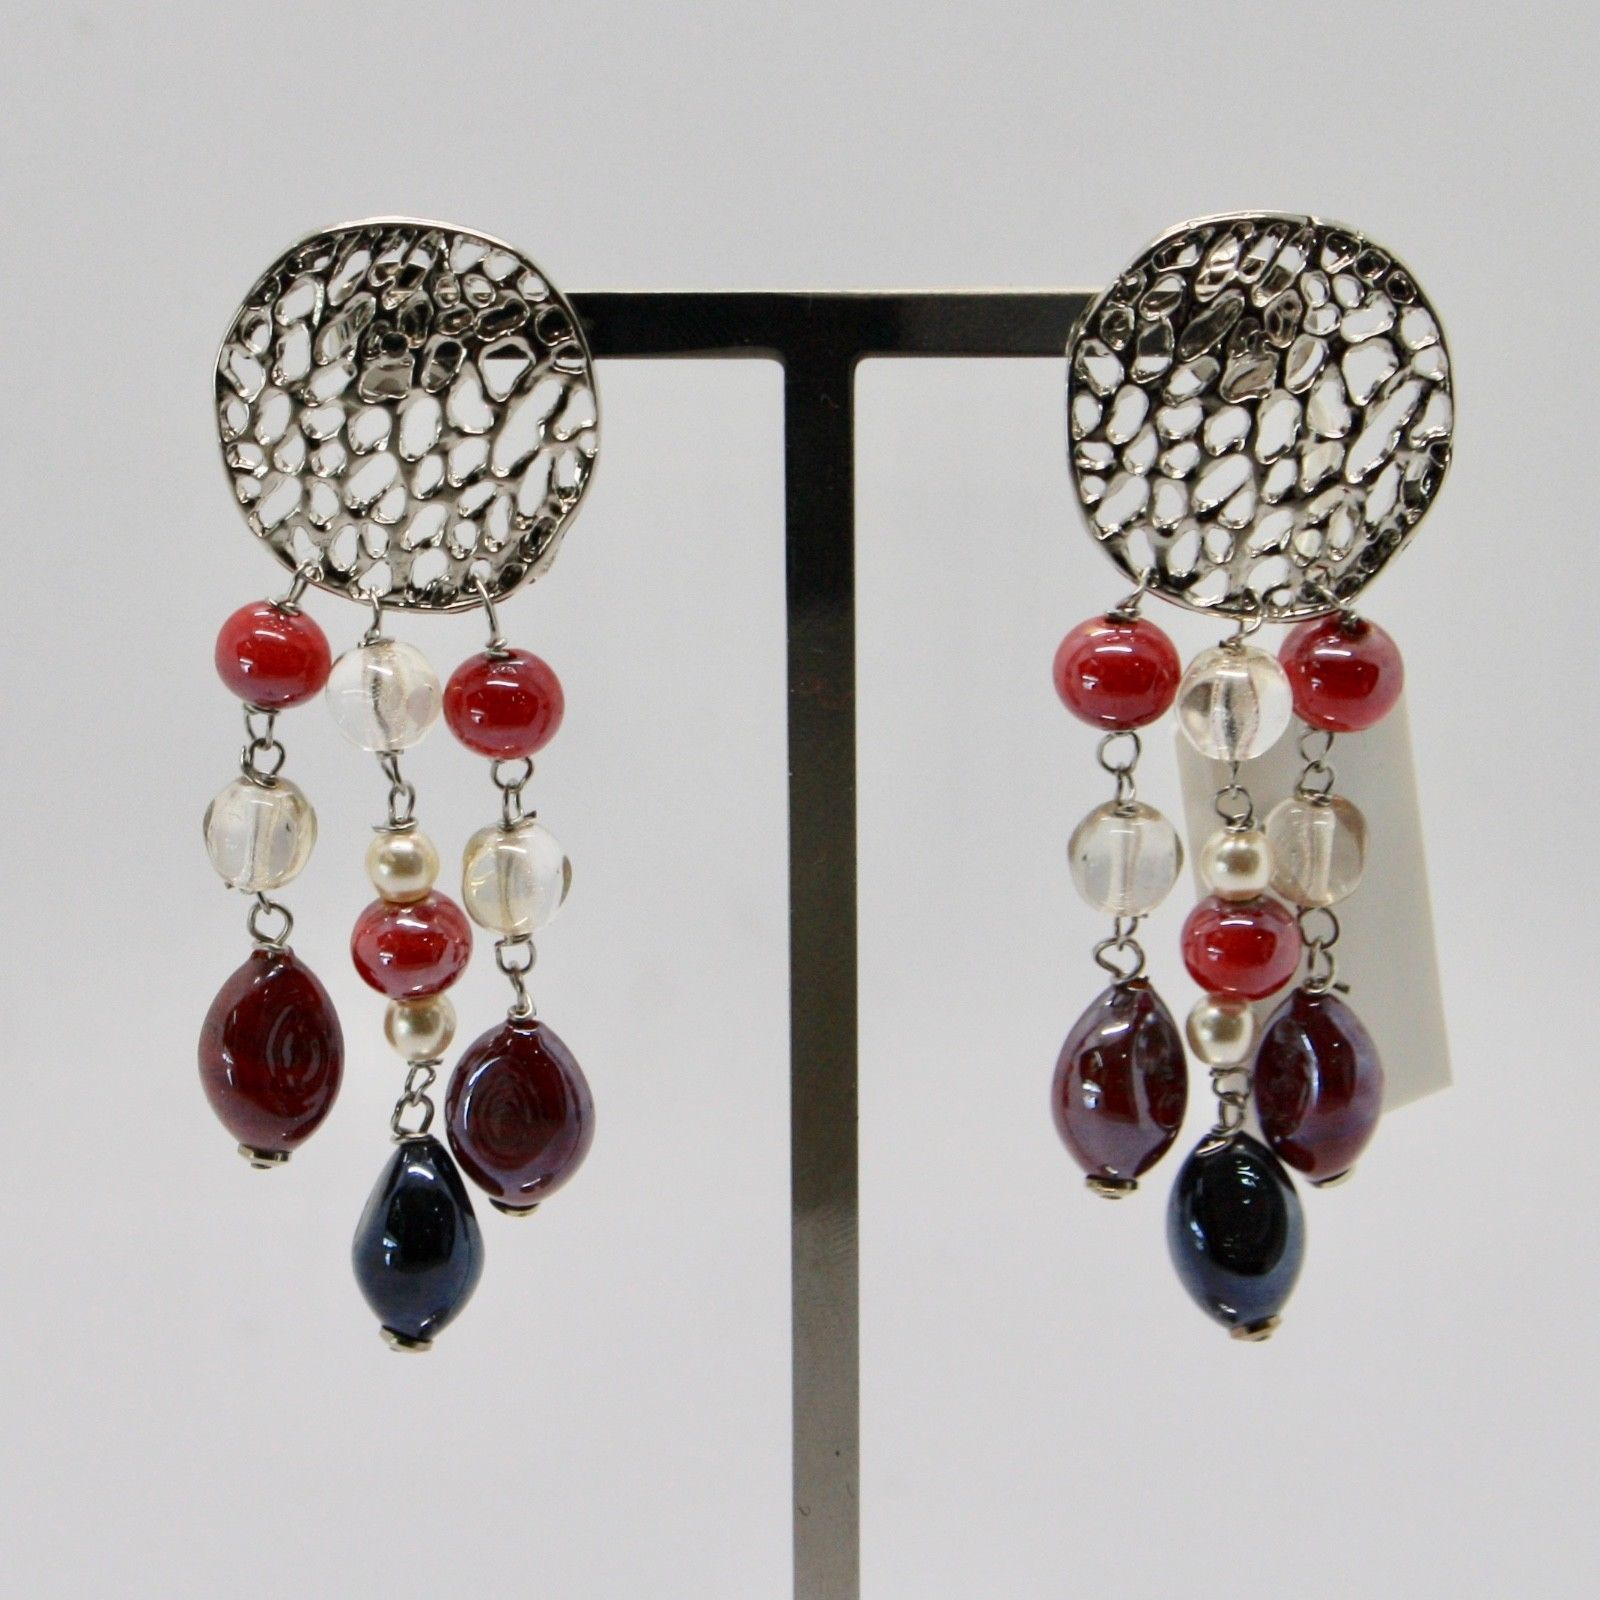 ANTICA MURRINA VENEZIA EARRINGS WITH MULTICOLOR MURANO GLASS AND STEEL OR571A11